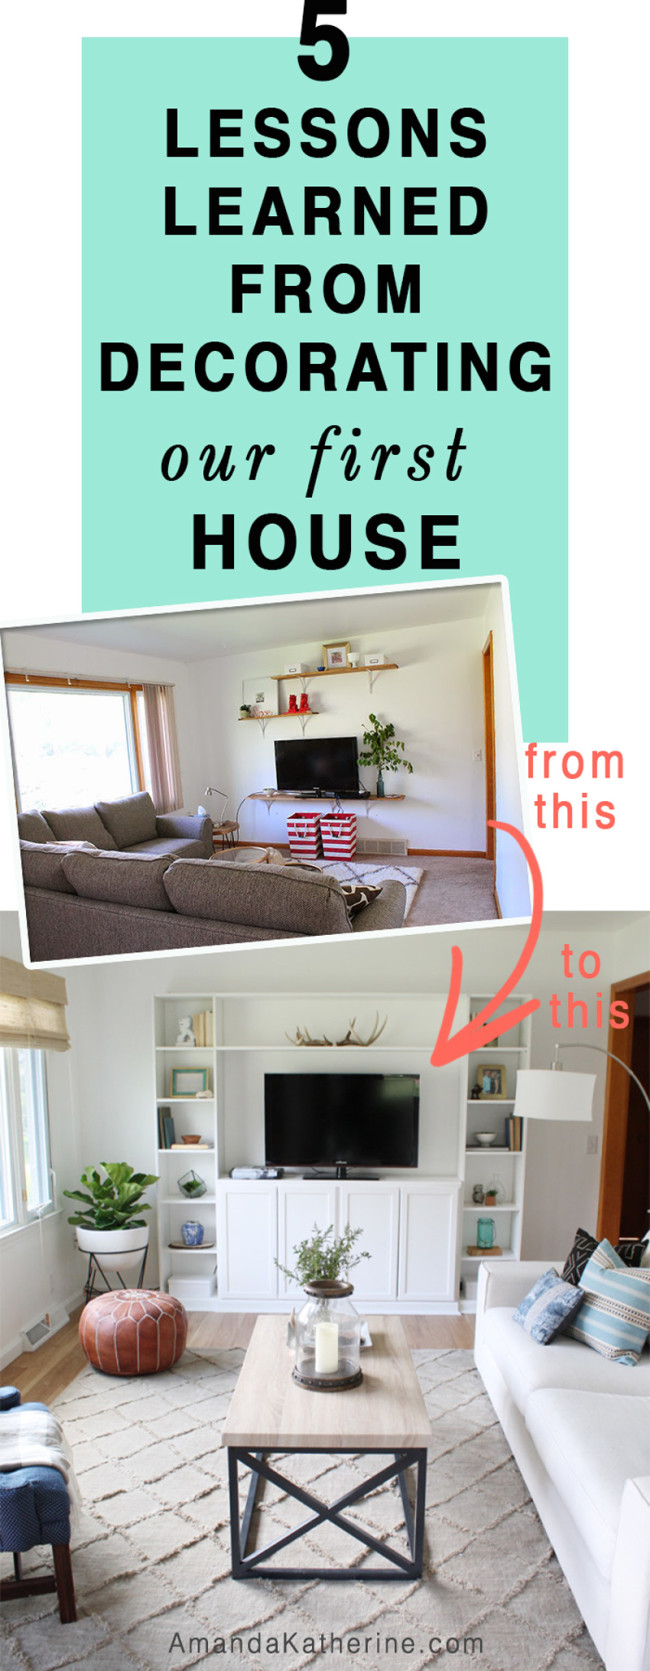 5 lessons learned from decorating our first house